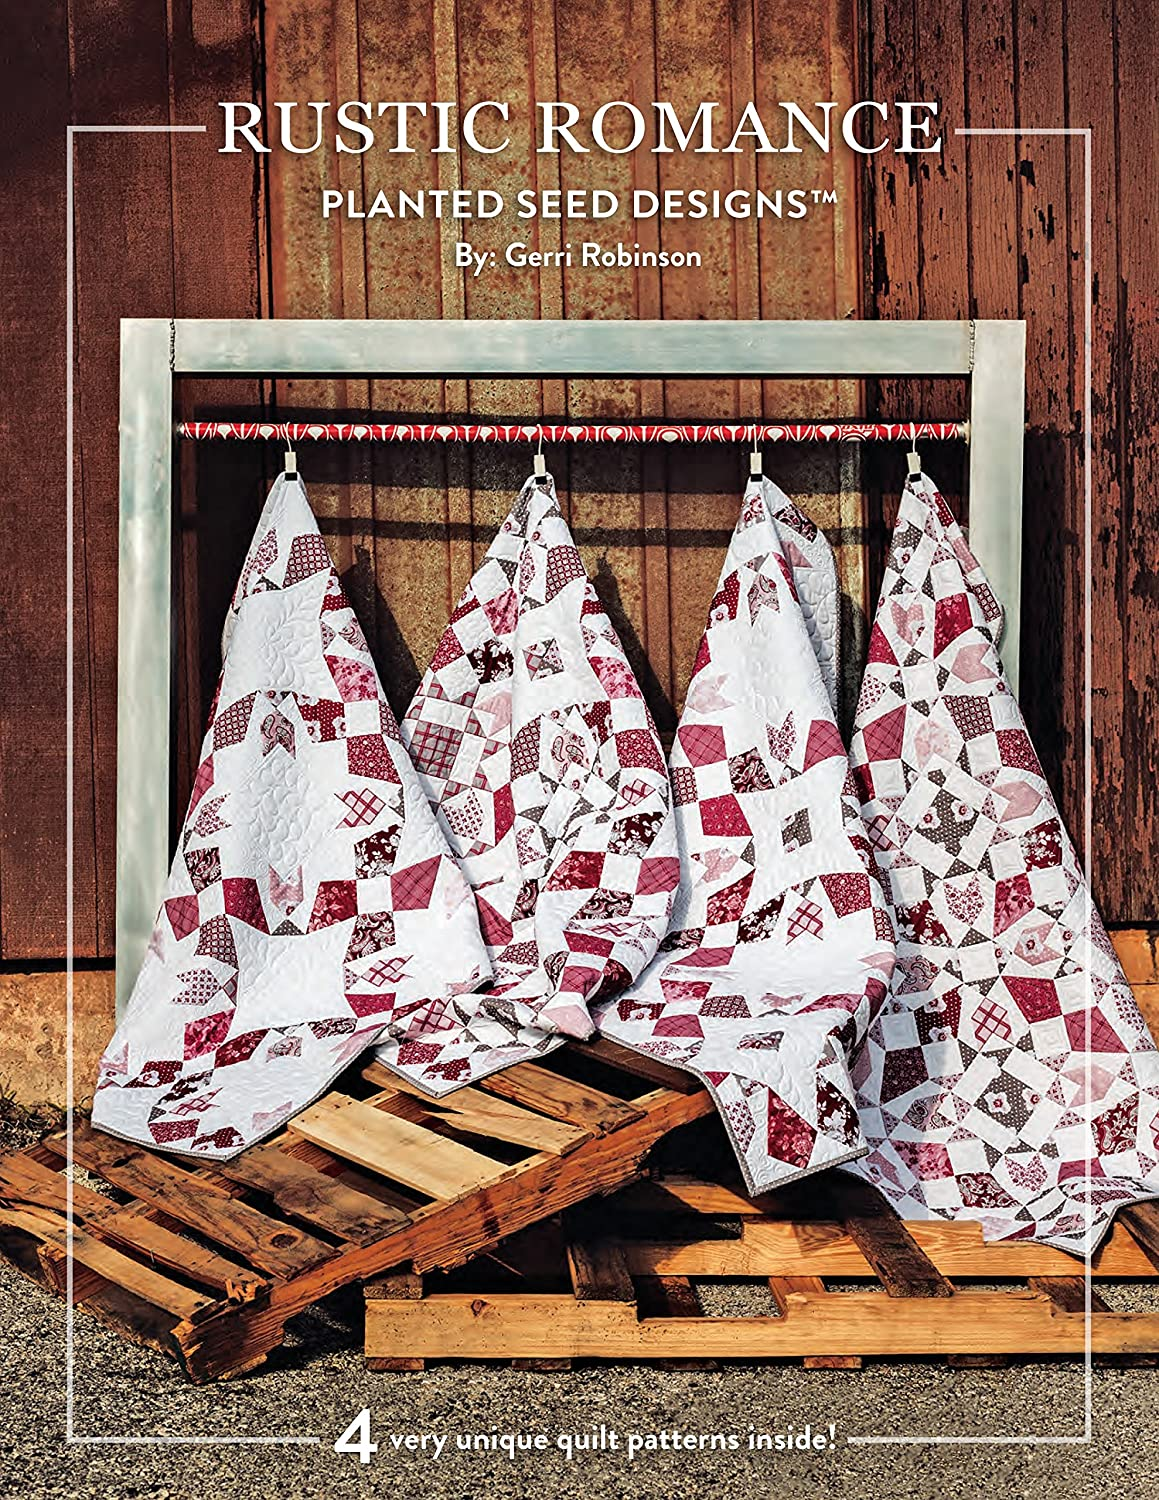 Rustic Romance by Planted Seed Designs: Four Very Unique Quilt Patterns  Inside